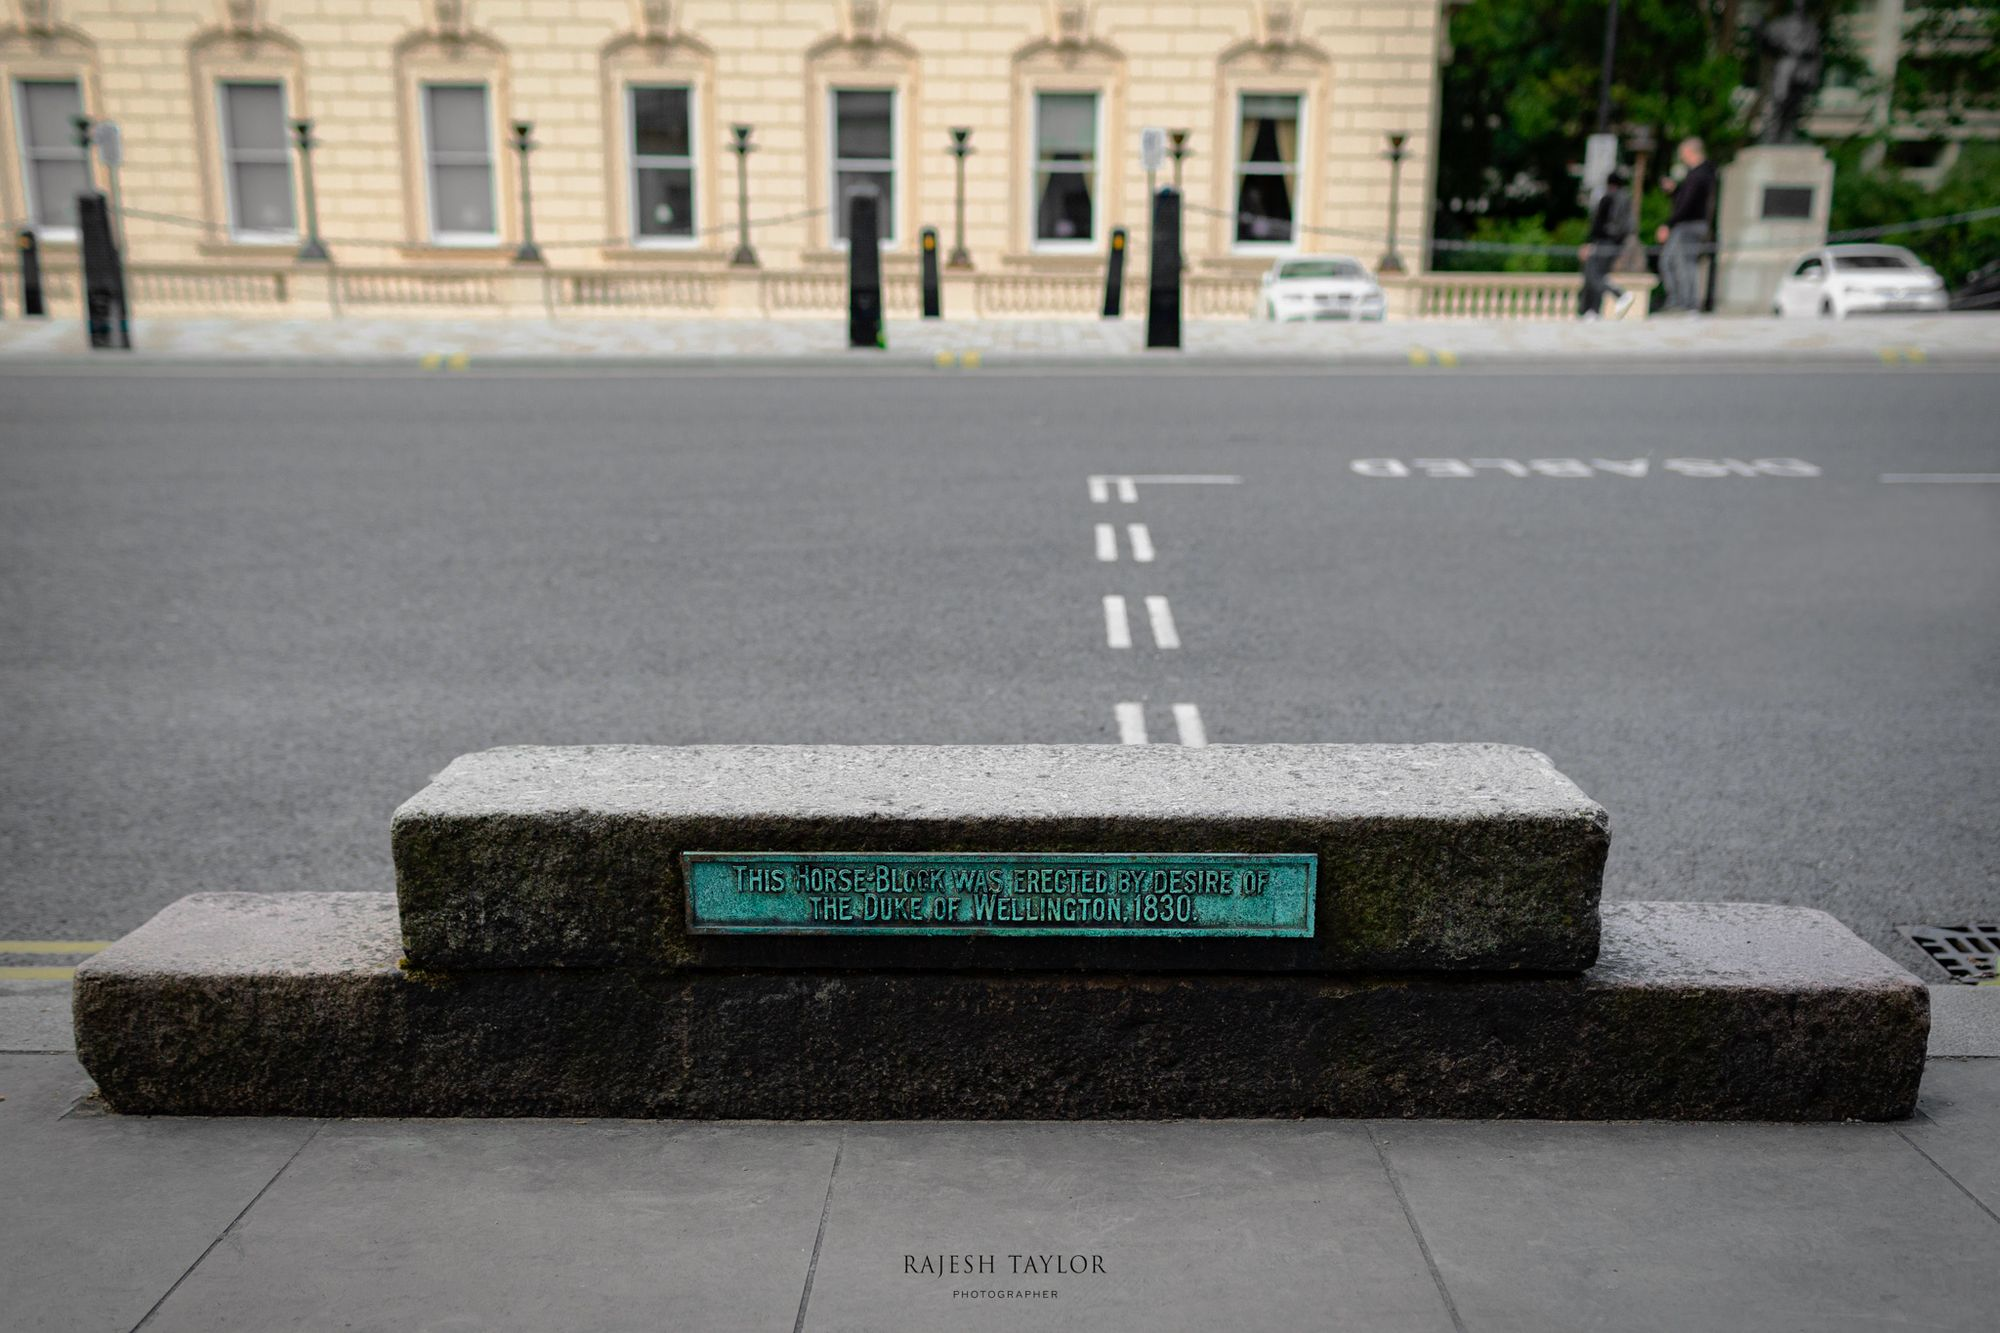 The Duke of Wellington's horse block on Waterloo Place, outside The Athenaeum Club © Rajesh Taylor